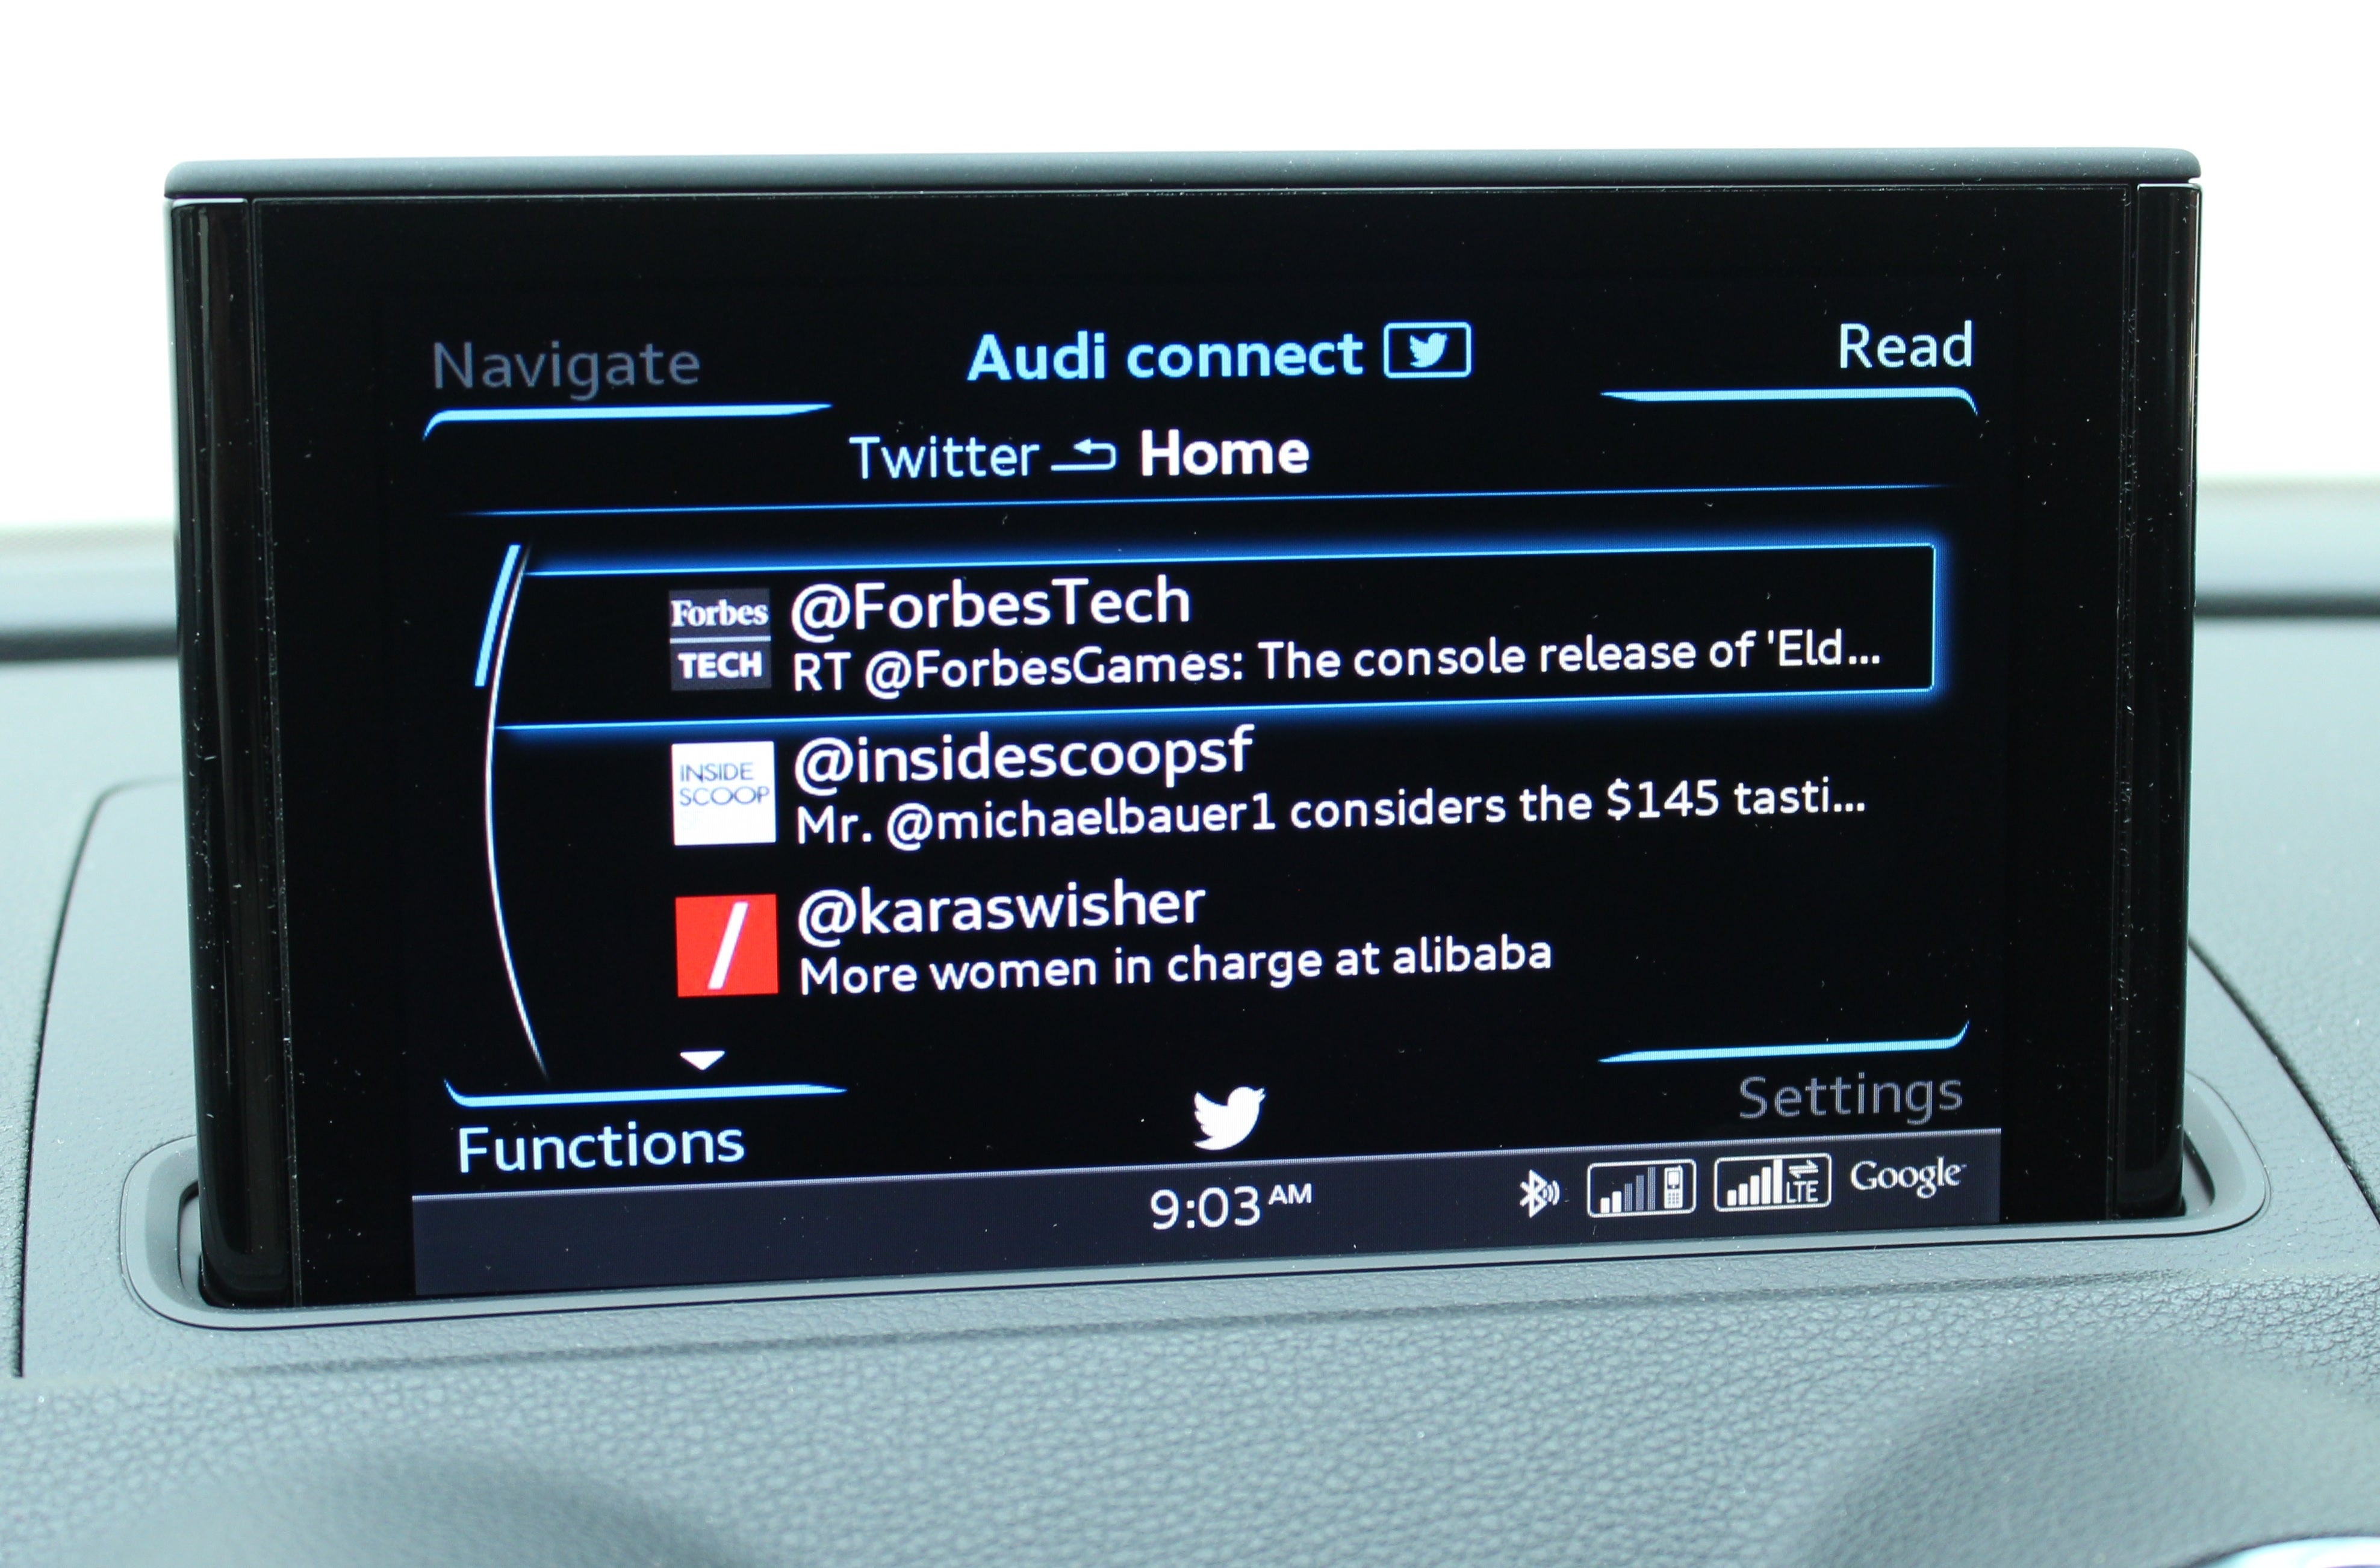 2015 Audi A3 Review Of 4g Lte Mmi And Audi Connect Services